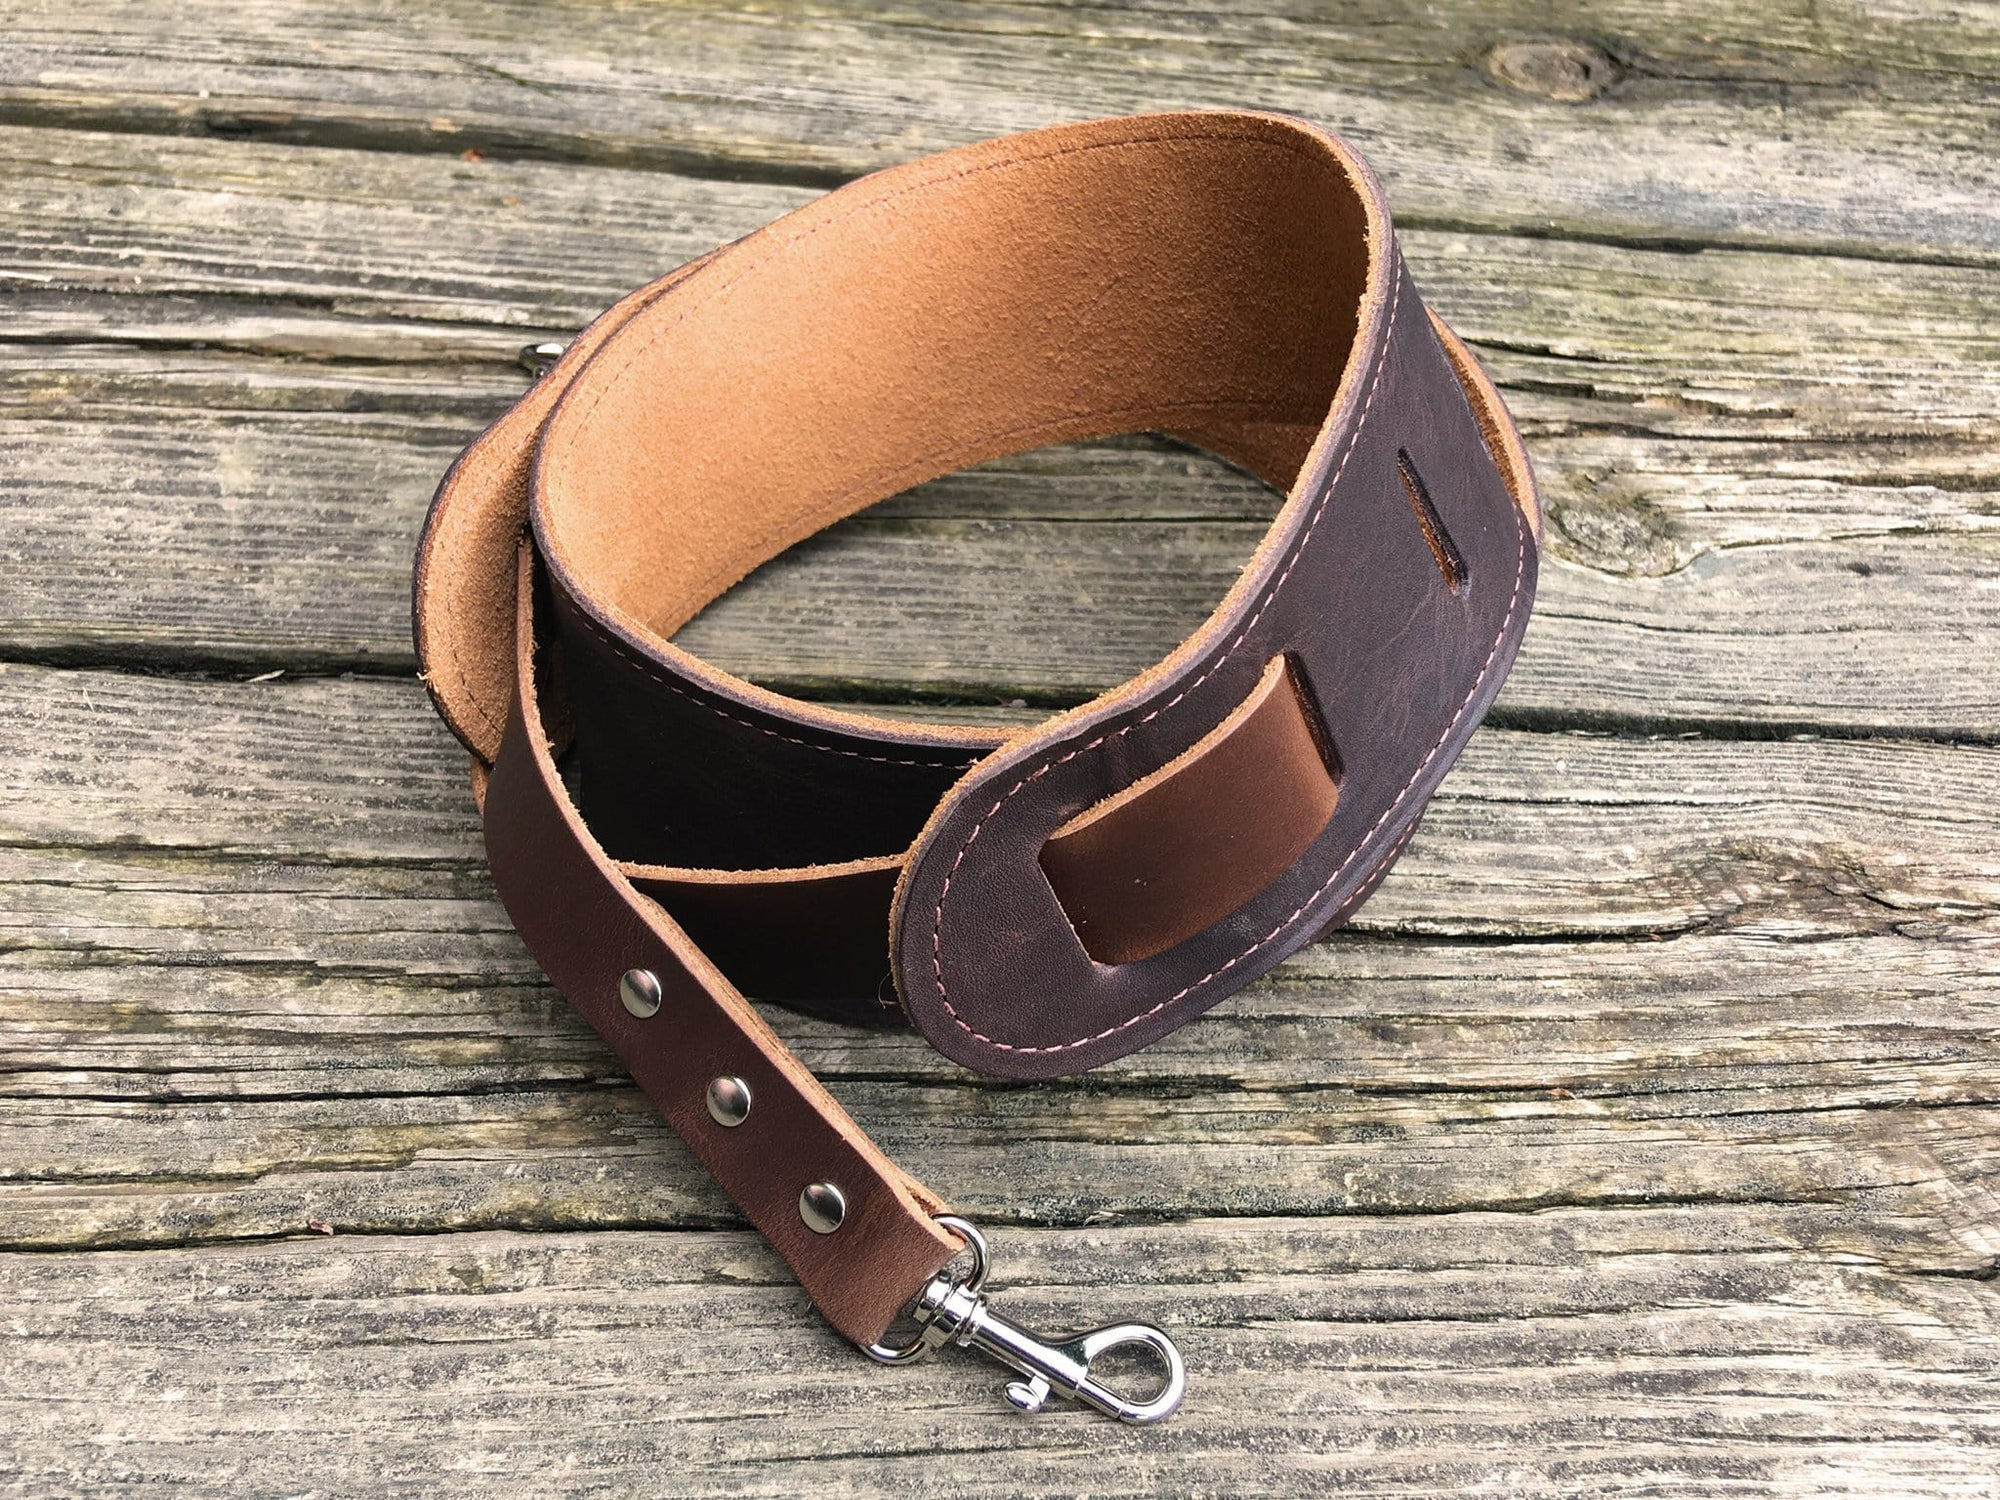 Easy attach banjo strap. Leather.